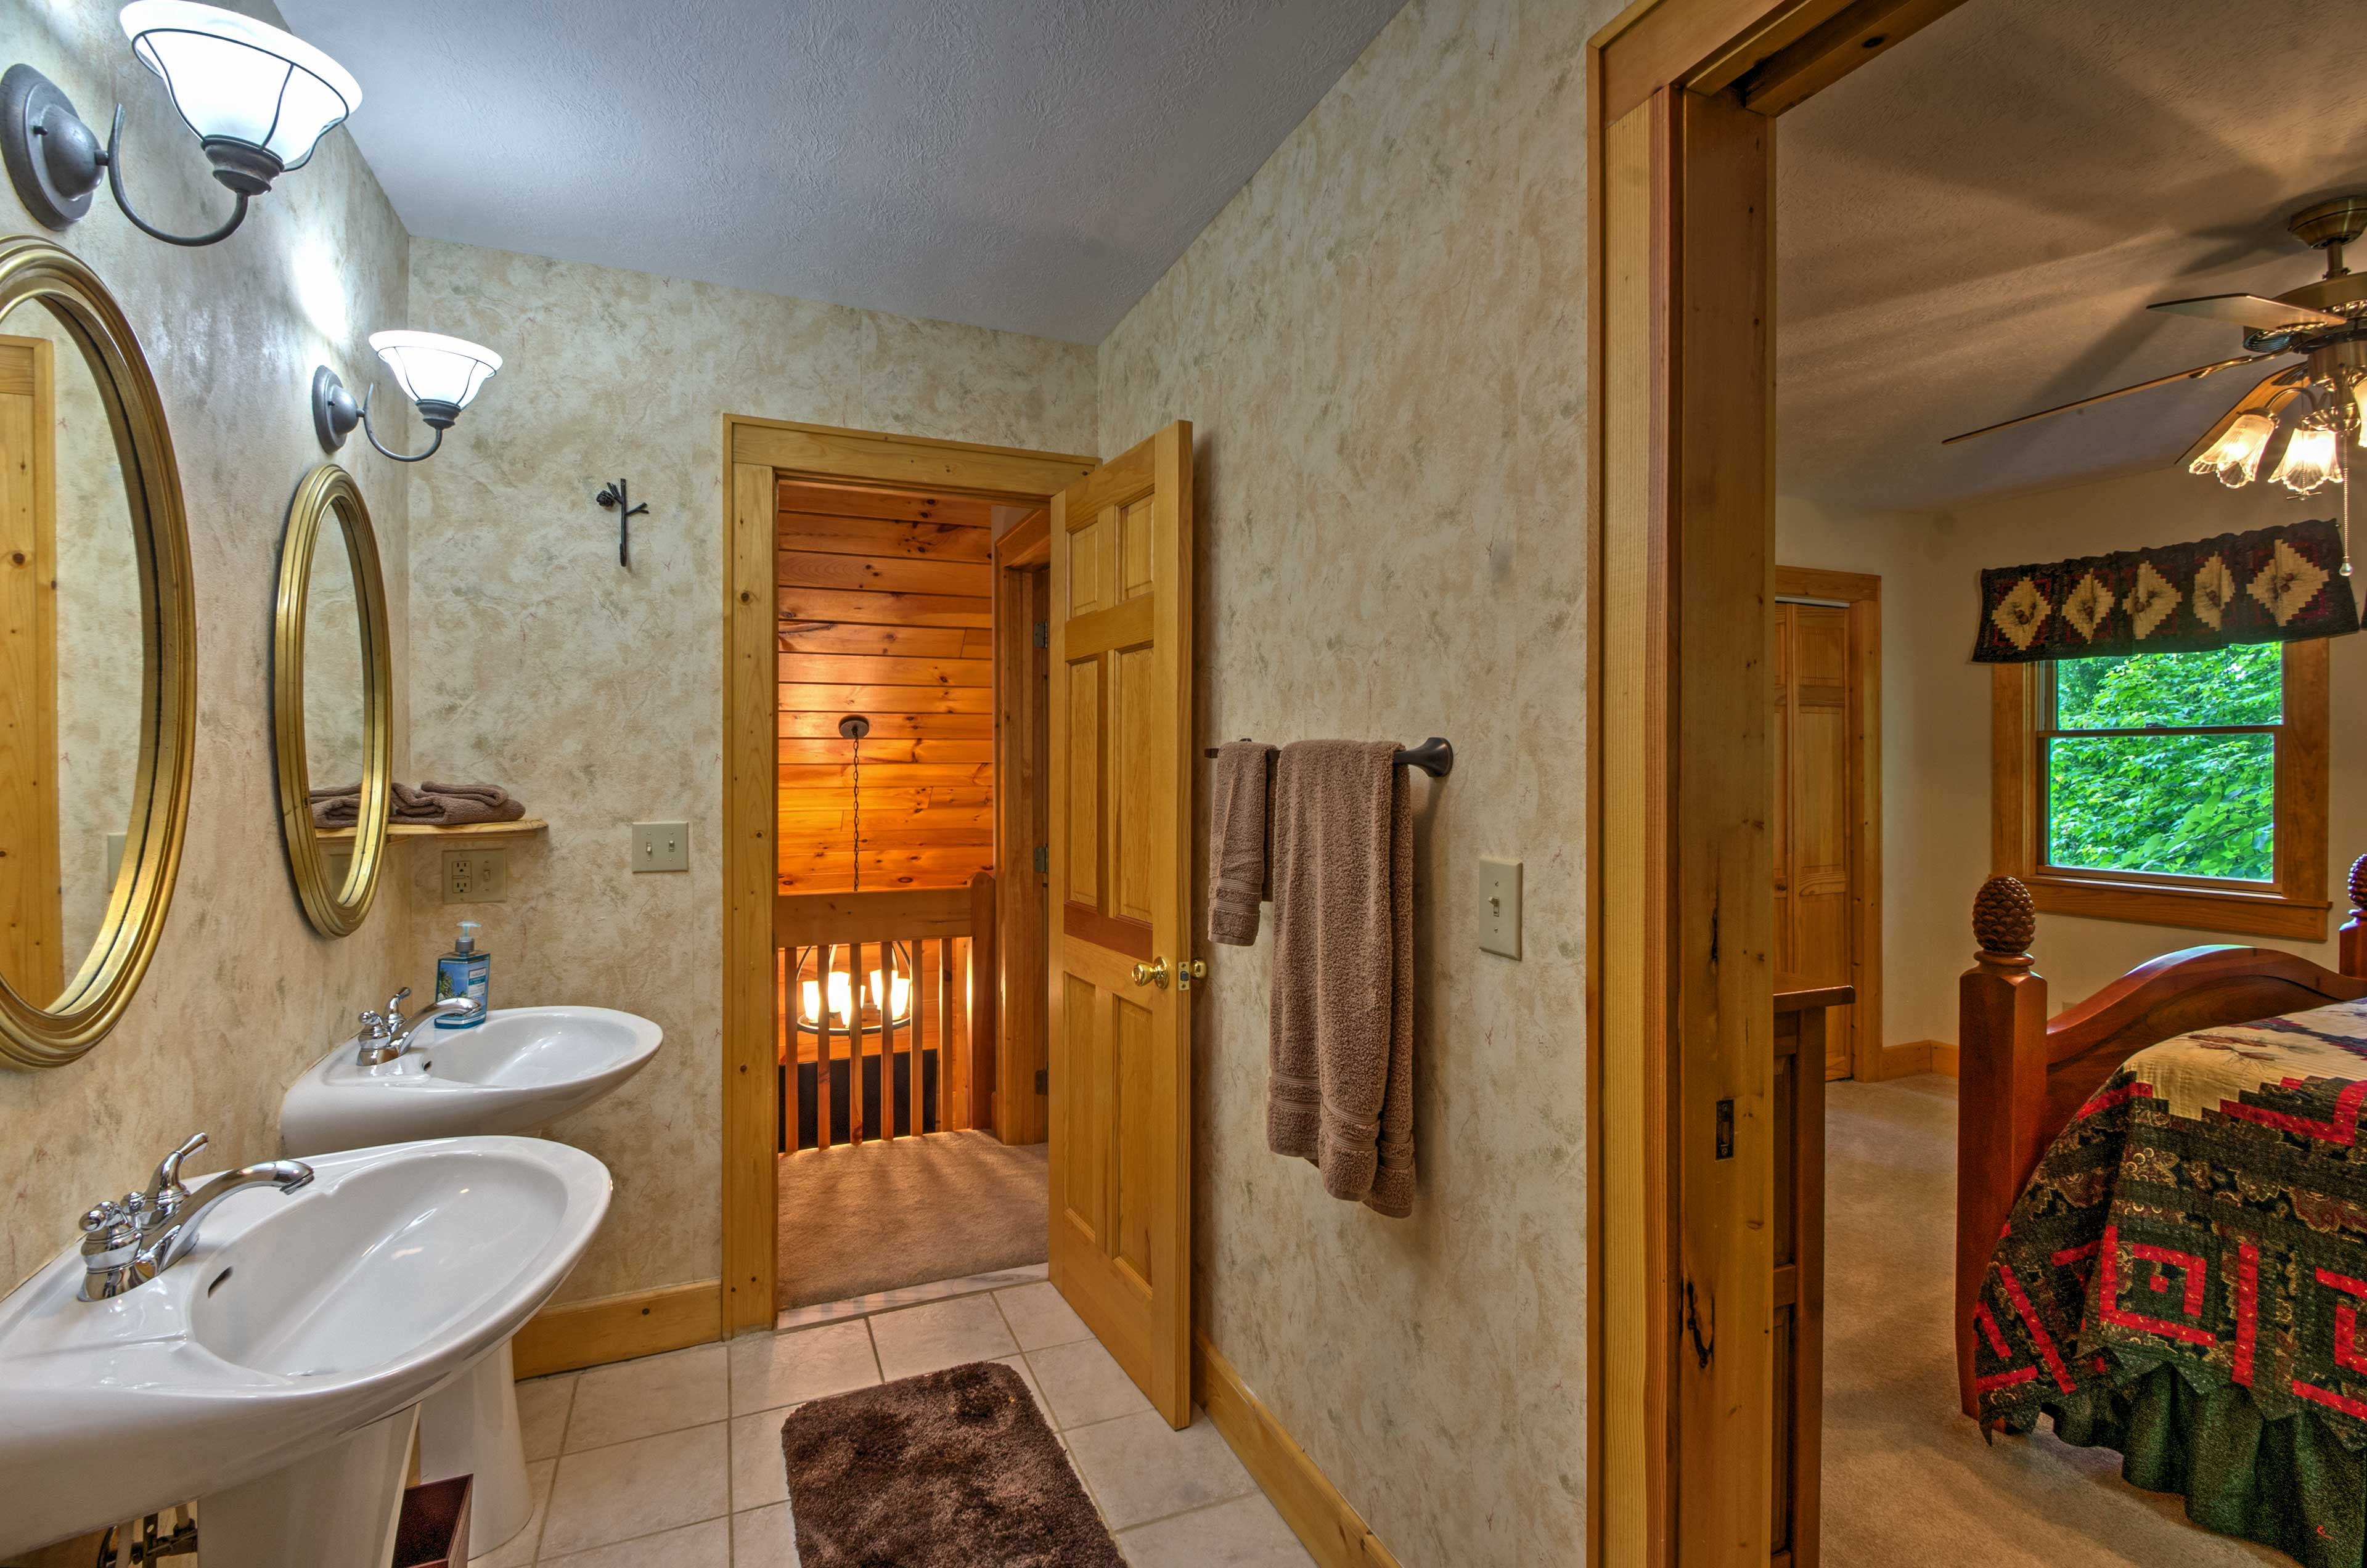 There are 2.5 bathrooms in the cabin.